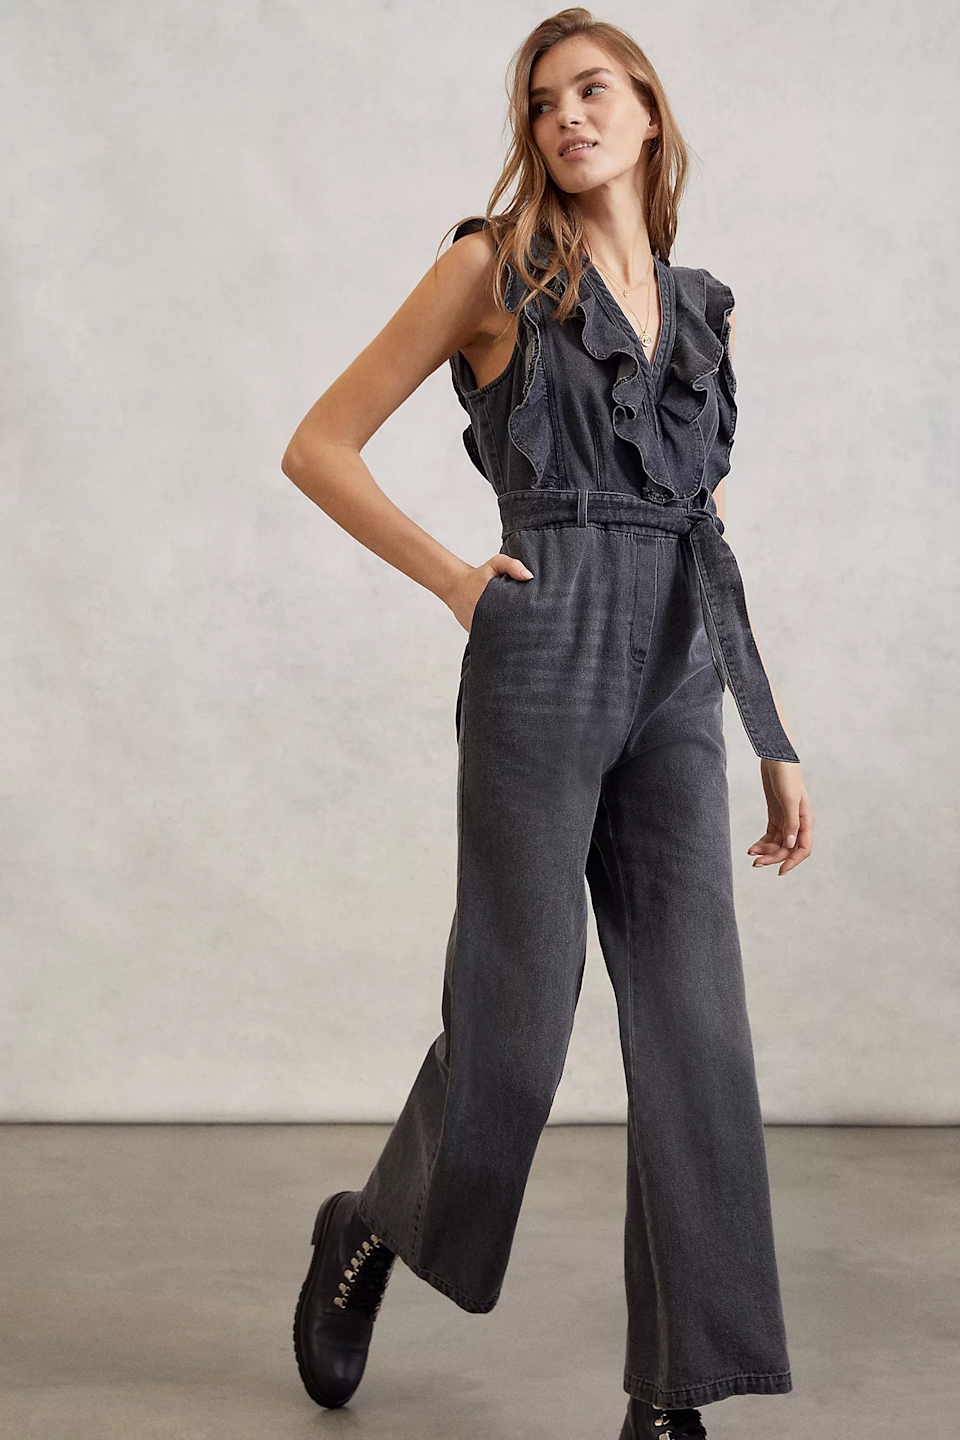 """<br><br><strong>Mare Mare</strong> Alena Ruffled Denim Jumpsuit, $, available at <a href=""""https://go.skimresources.com/?id=30283X879131&url=https%3A%2F%2Fwww.anthropologie.com%2Fshop%2Falena-ruffled-denim-jumpsuit%3Fcolor%3D004%26type%3DSTANDARD%26quantity%3D1"""" rel=""""nofollow noopener"""" target=""""_blank"""" data-ylk=""""slk:Anthropologie"""" class=""""link rapid-noclick-resp"""">Anthropologie</a>"""